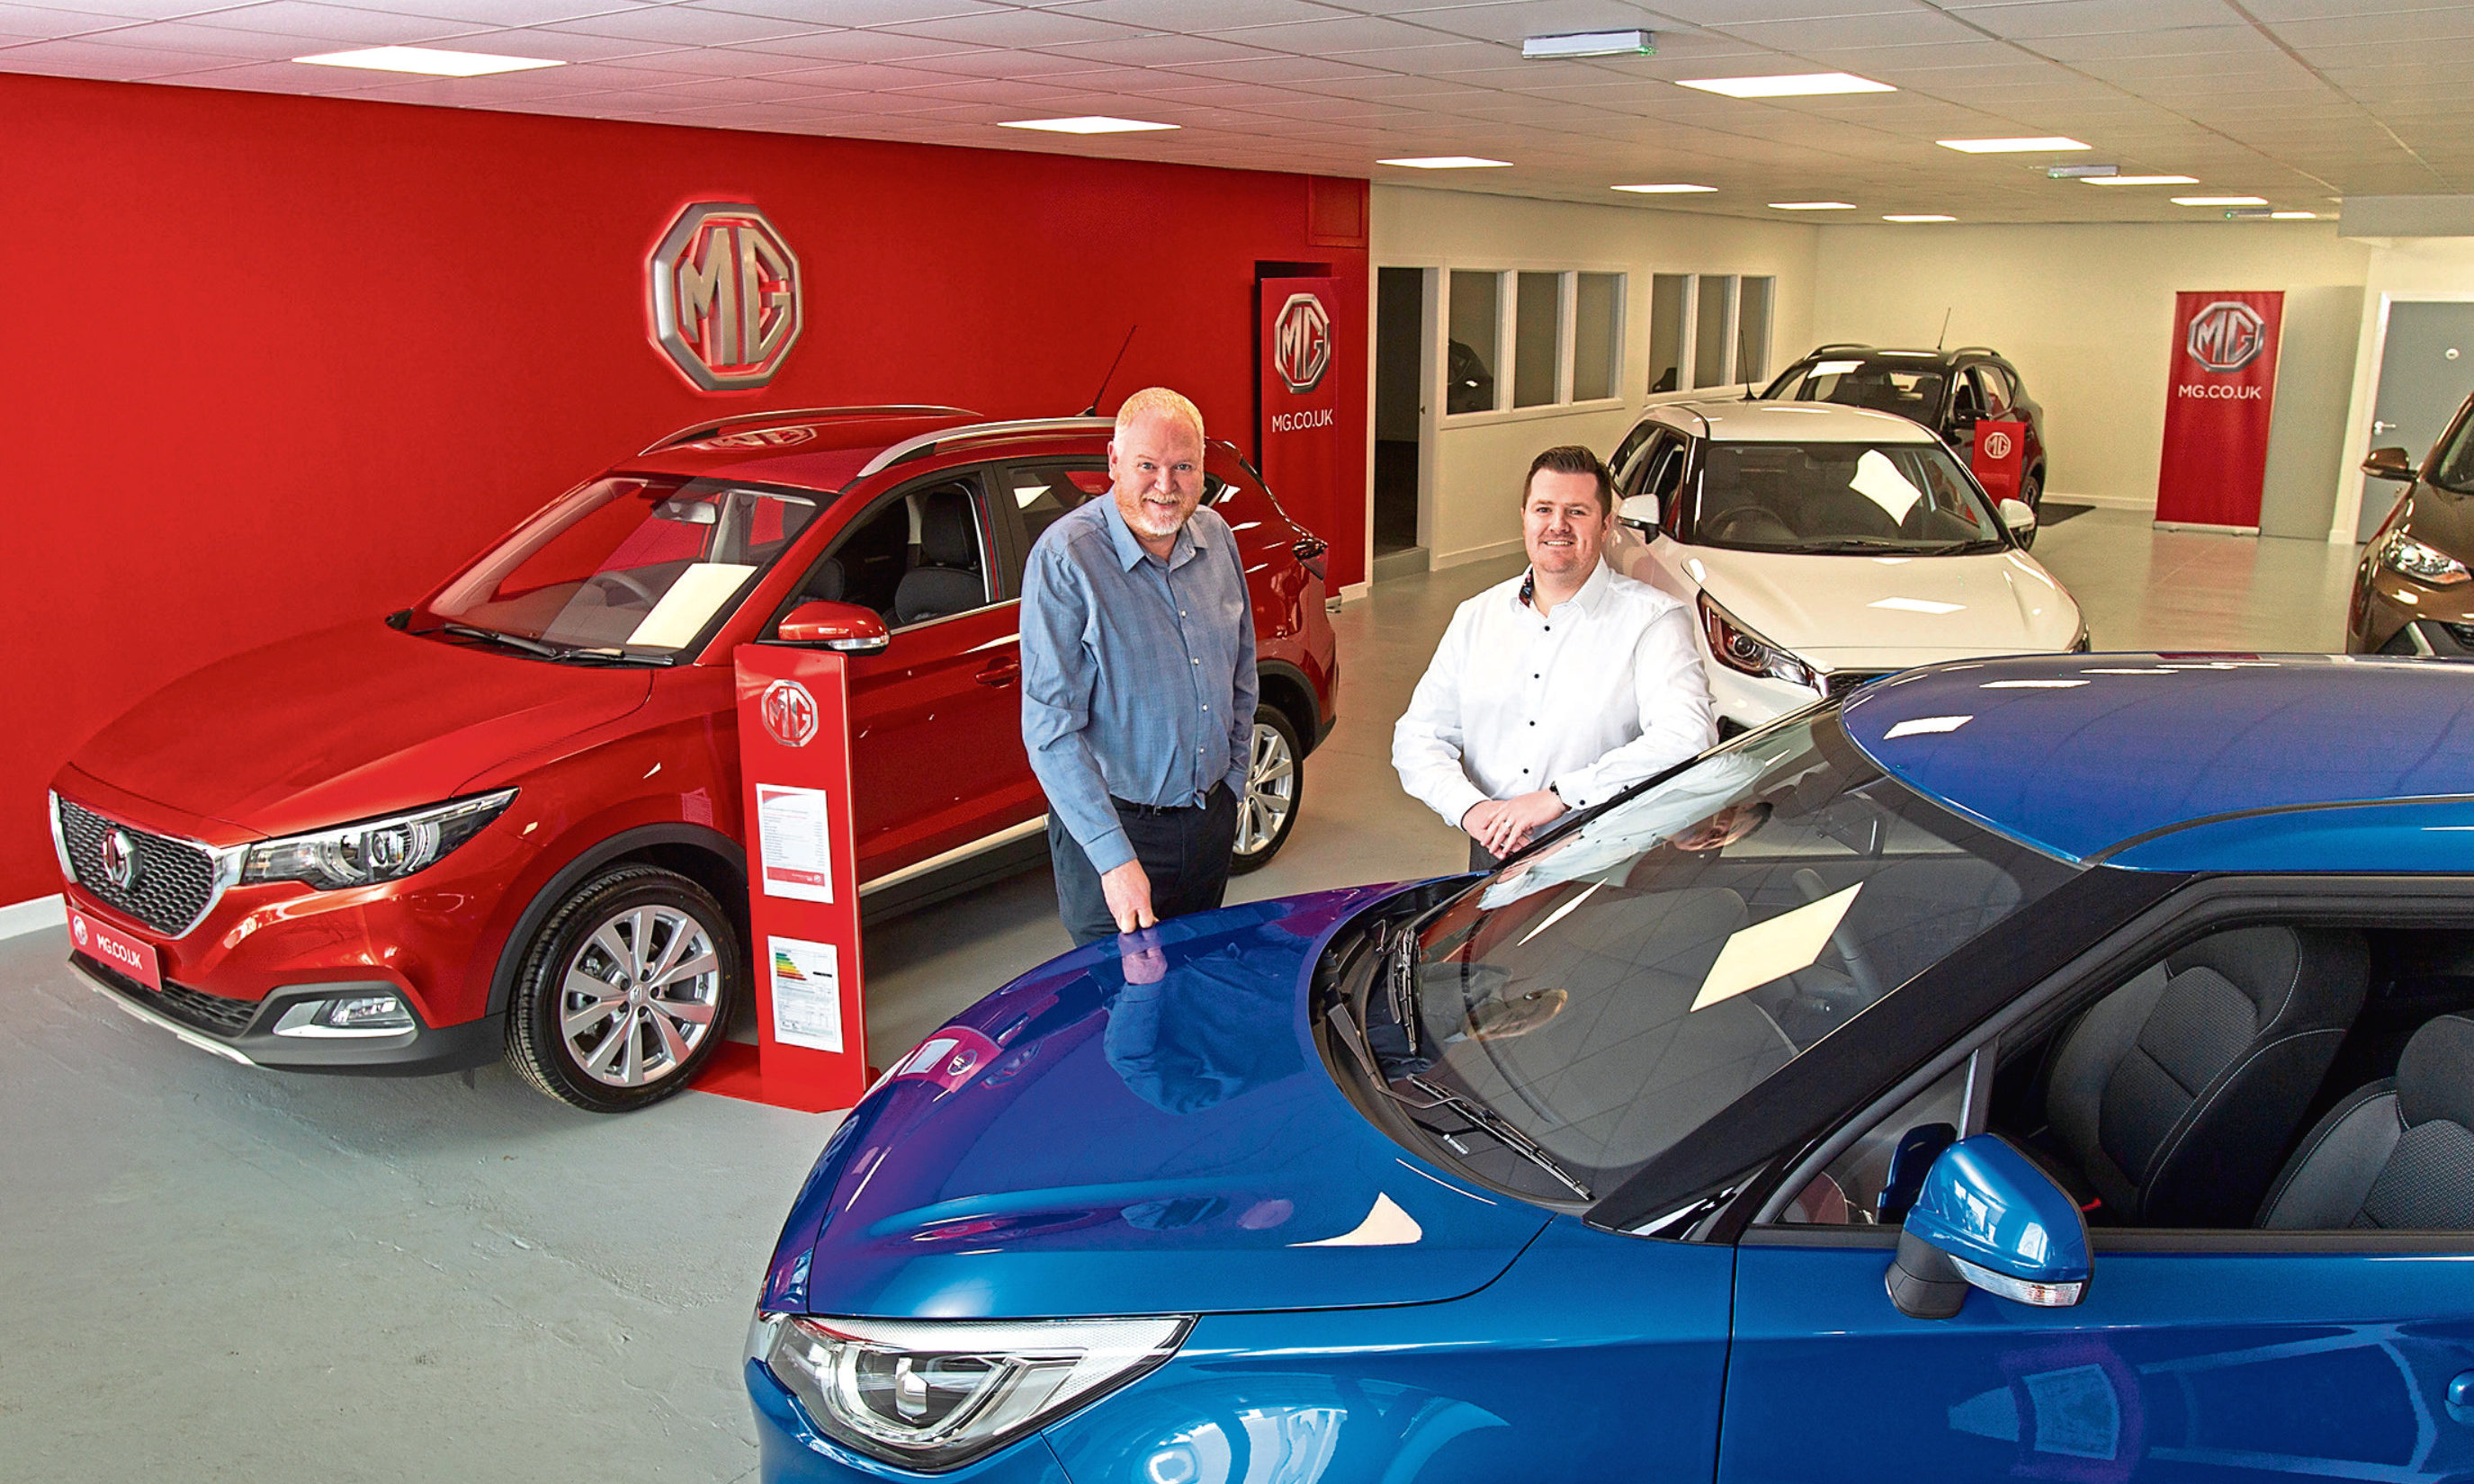 CR0006028  Mackie Motors, Clerk Street, Brechin  Mackie Motors who are opening a new MG dealership opposite their current premises.  Pic shows Franchise Director Greg Black(left) with MG Sales Manager Kevin Cameron  Pic Paul Reid